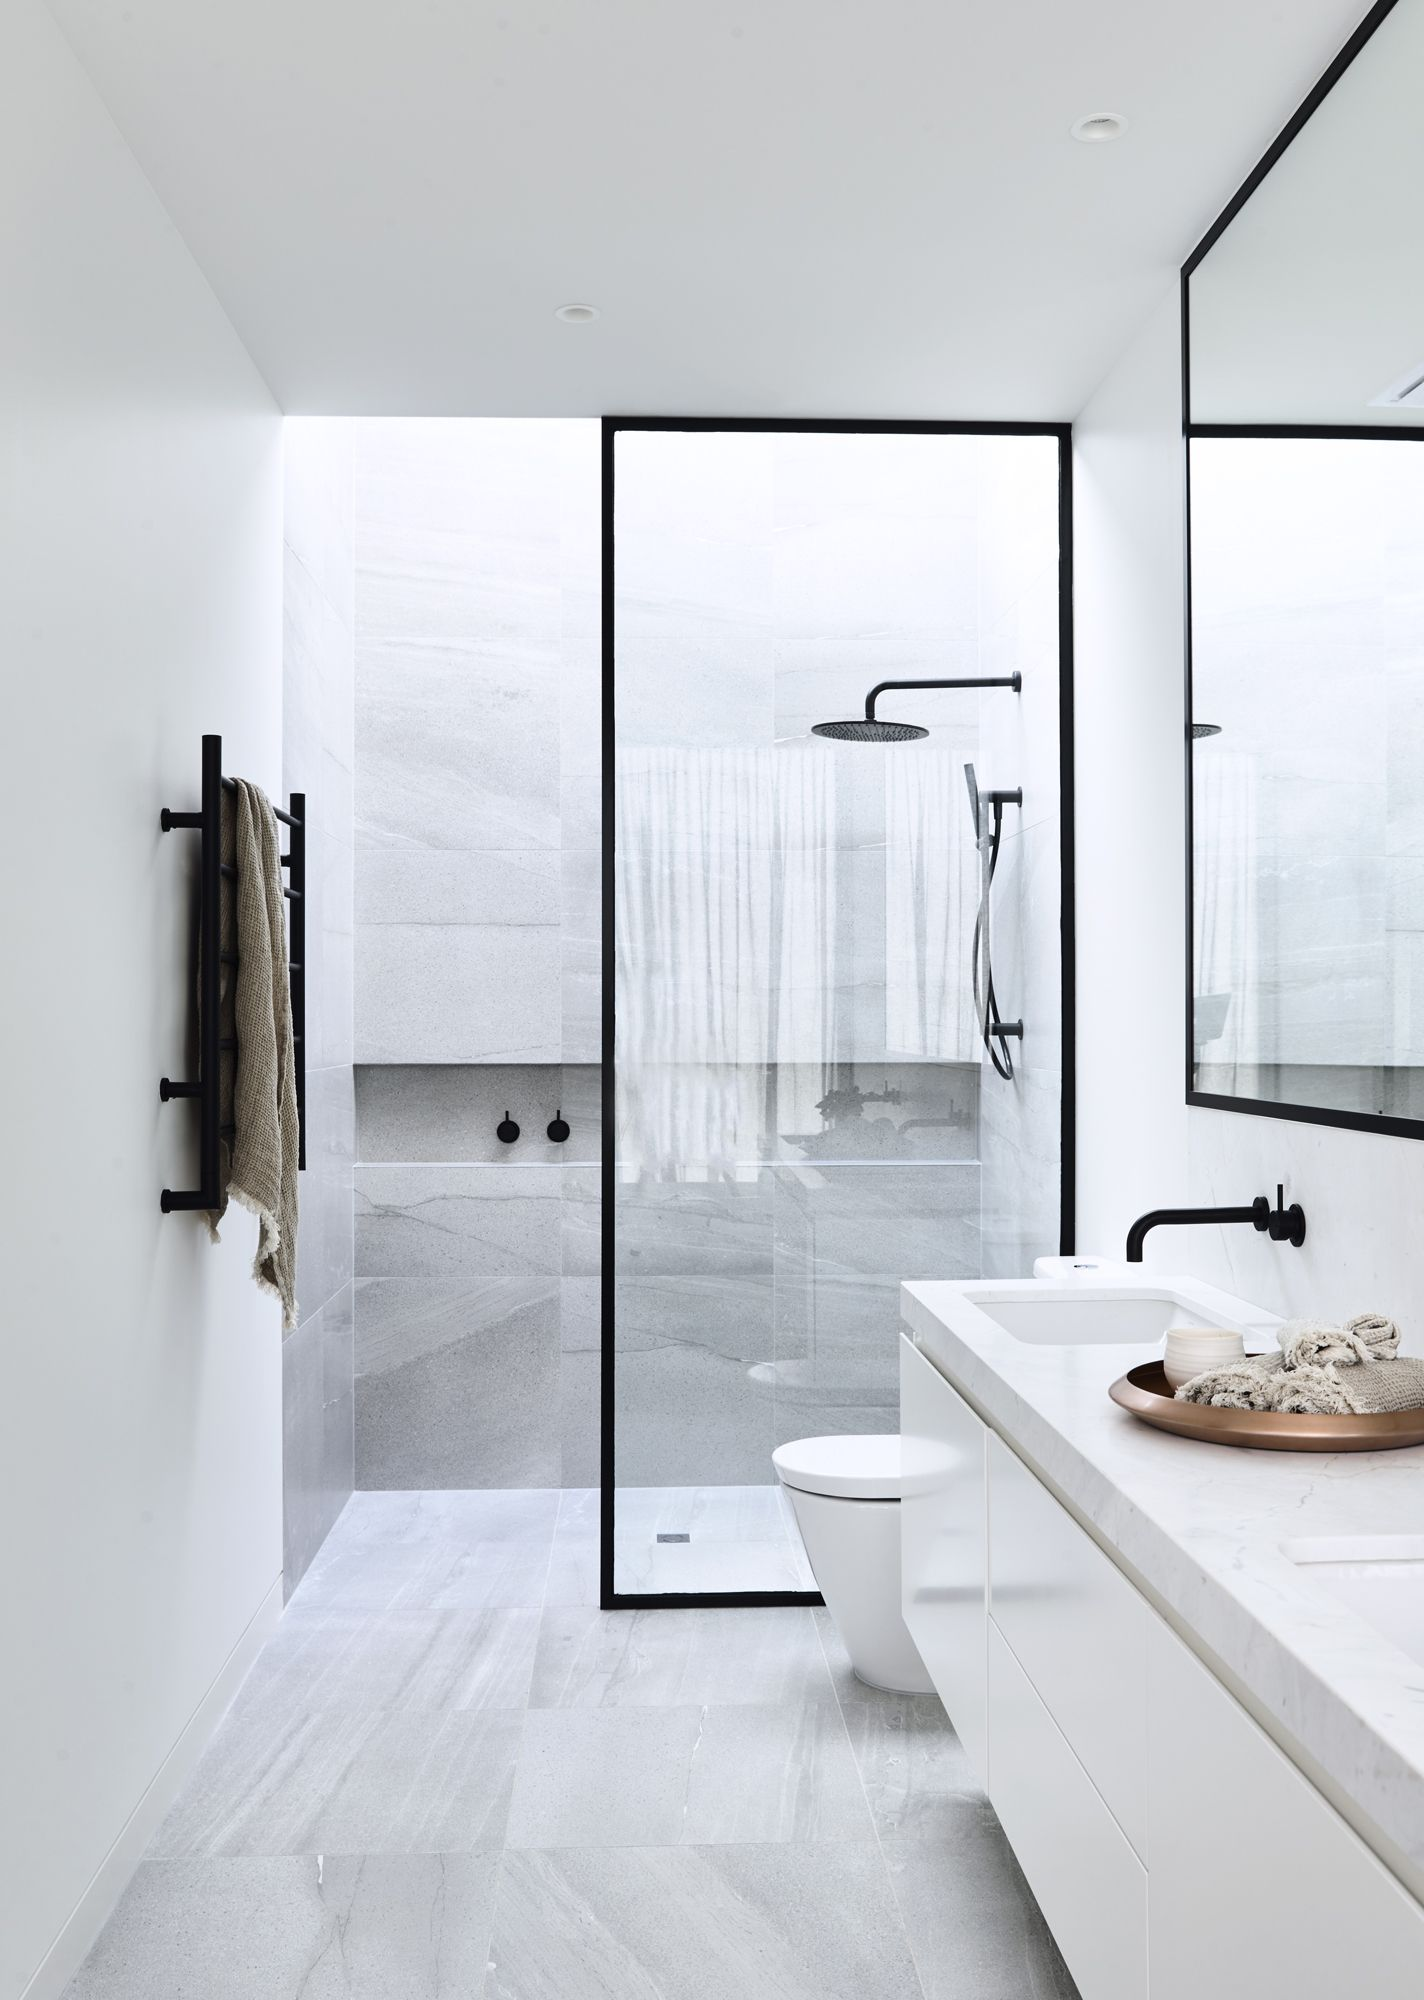 Walk In Shower Ideas That Redefine Luxury in 2018 | villanueva 2 ...